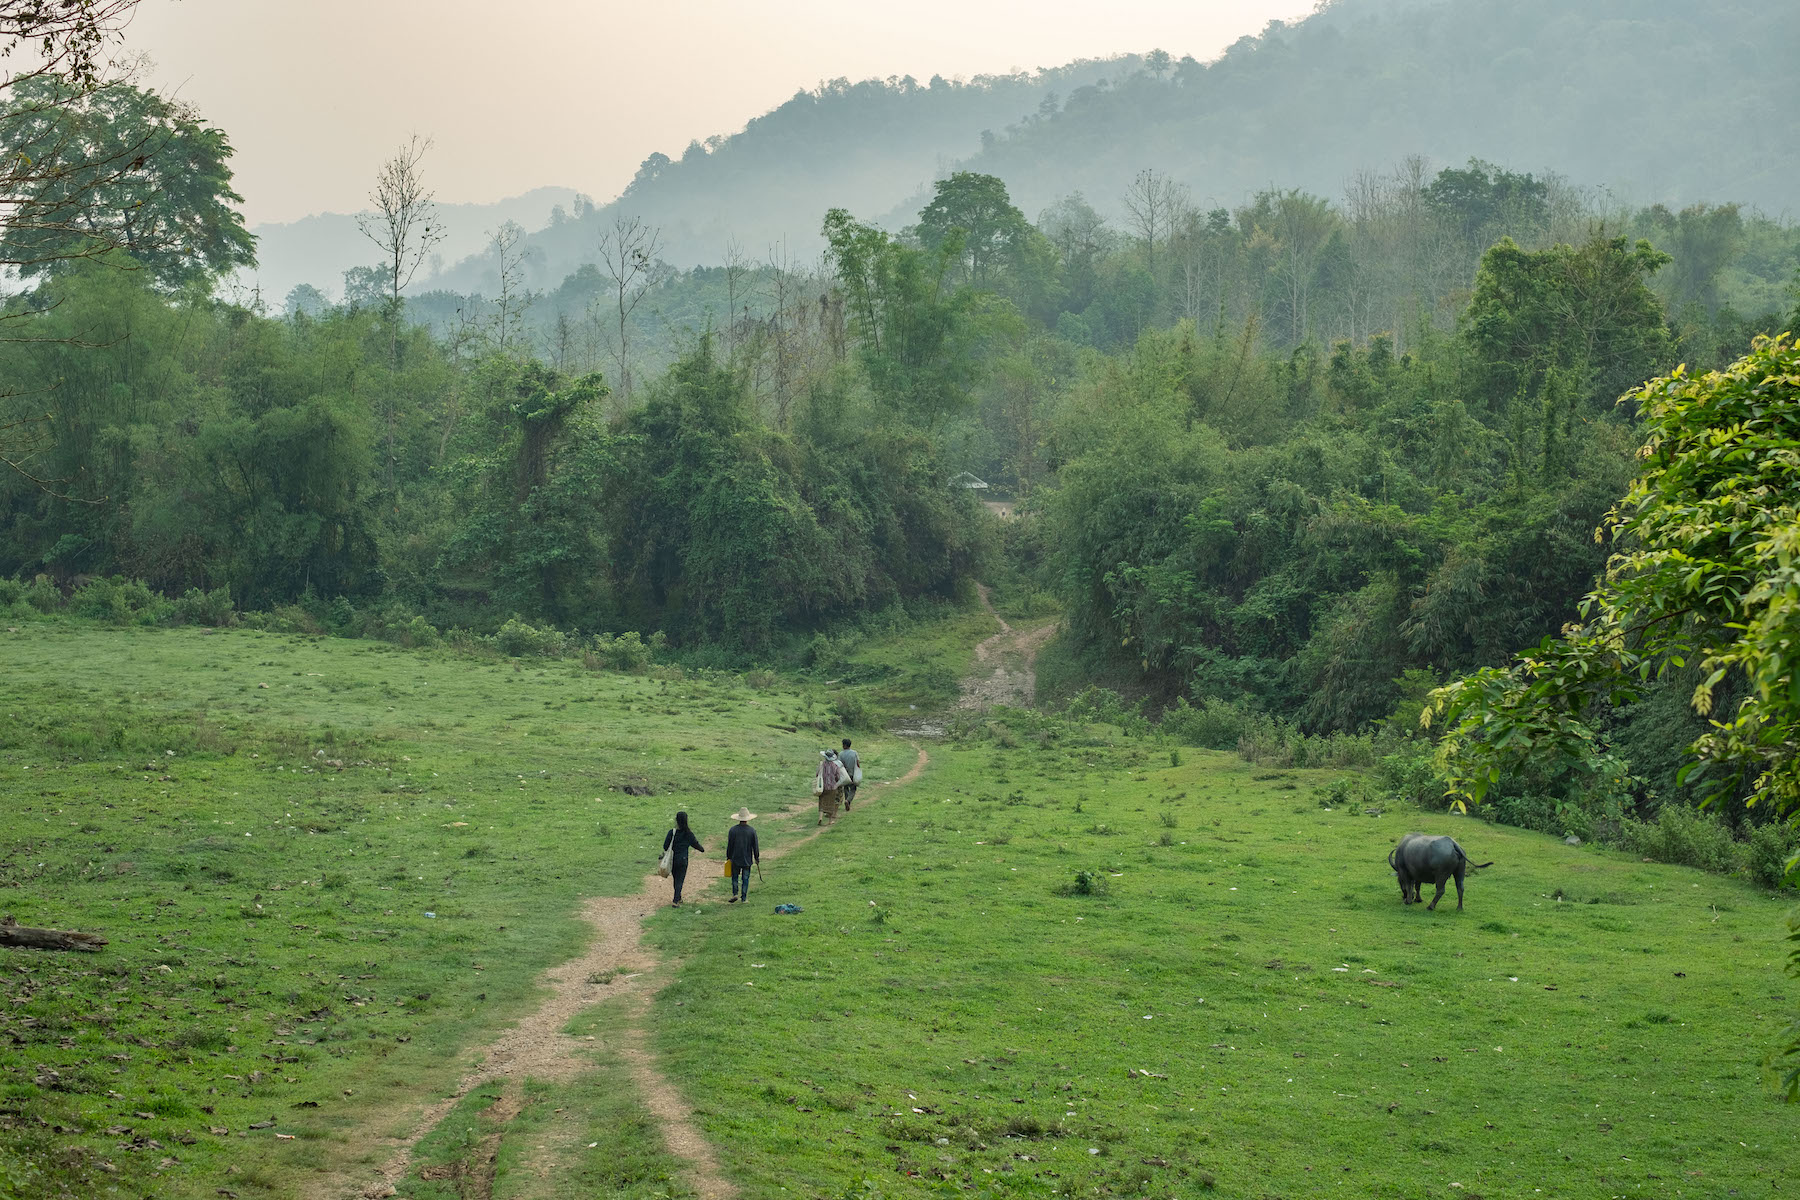 Strengthening forest governance is vital for growth of Southeast Asia's forests